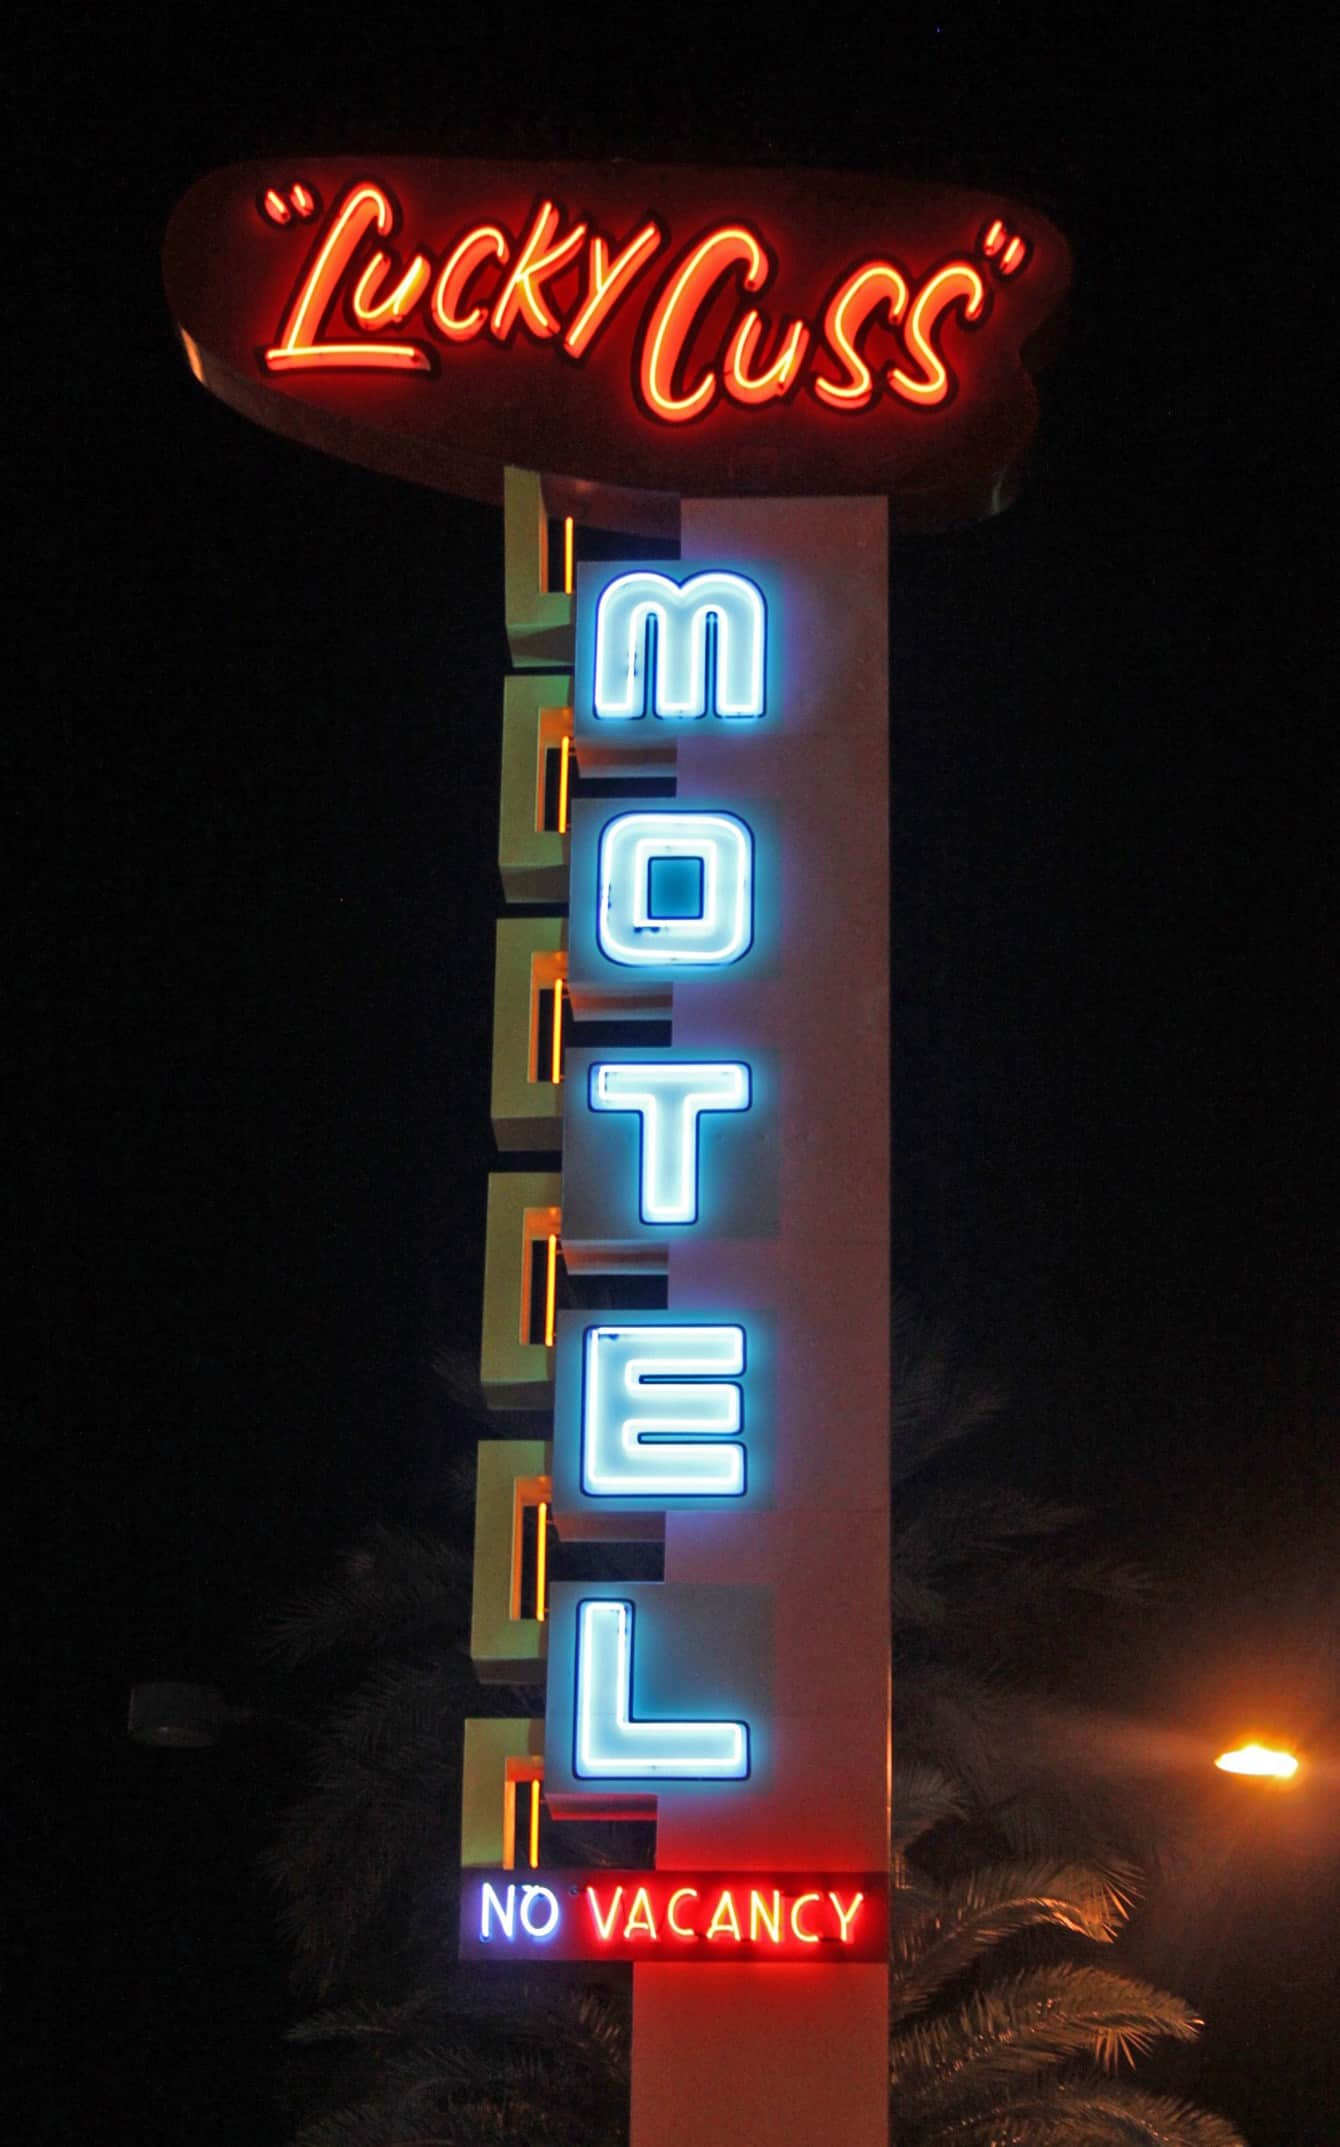 The Lucky Cuss Motel